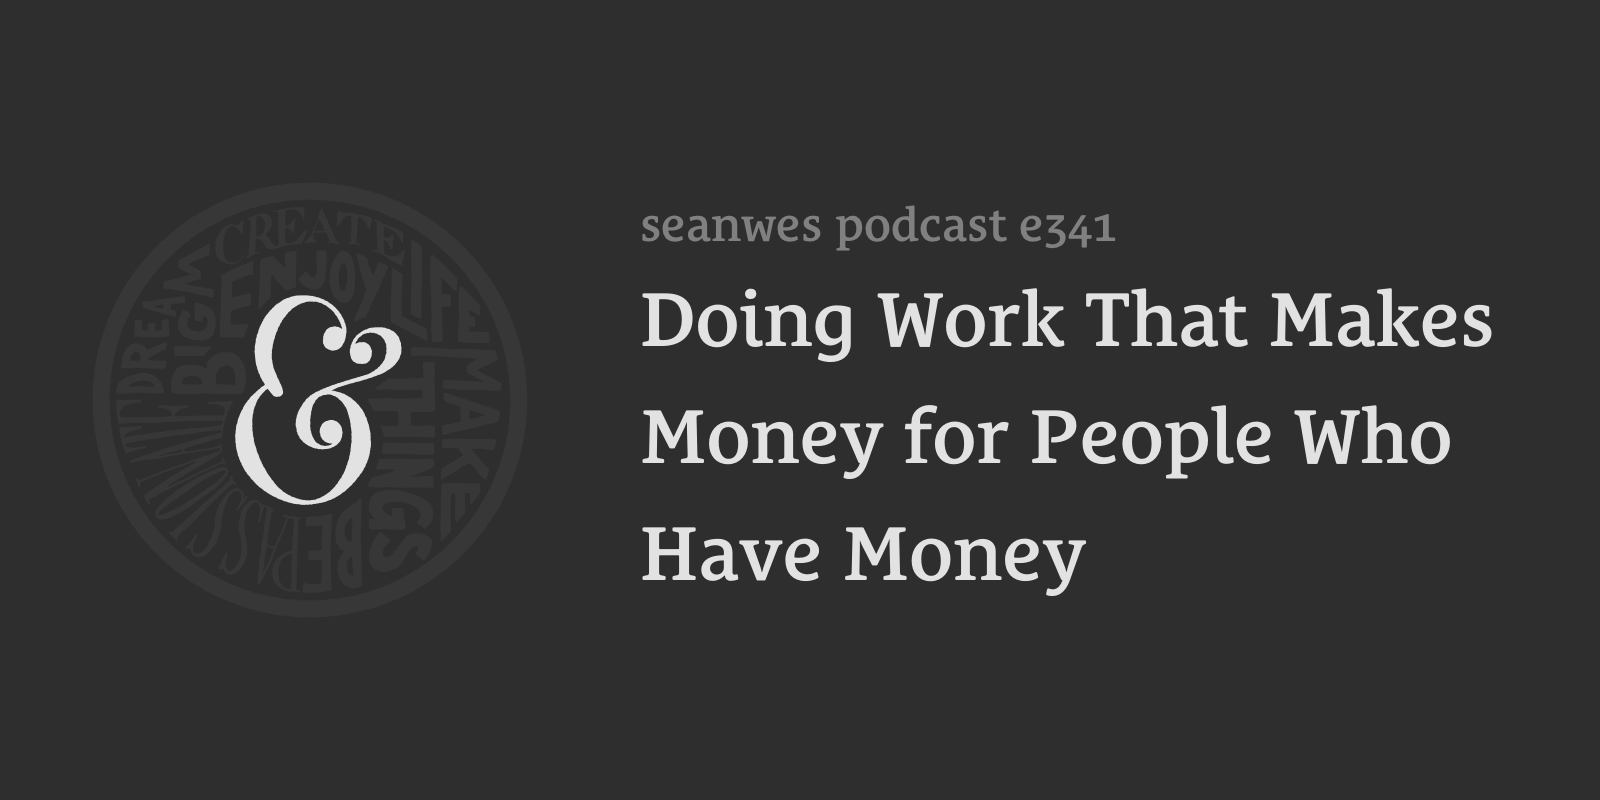 seanwes podcast 341: Doing Work That Makes Money for People Who Have Money